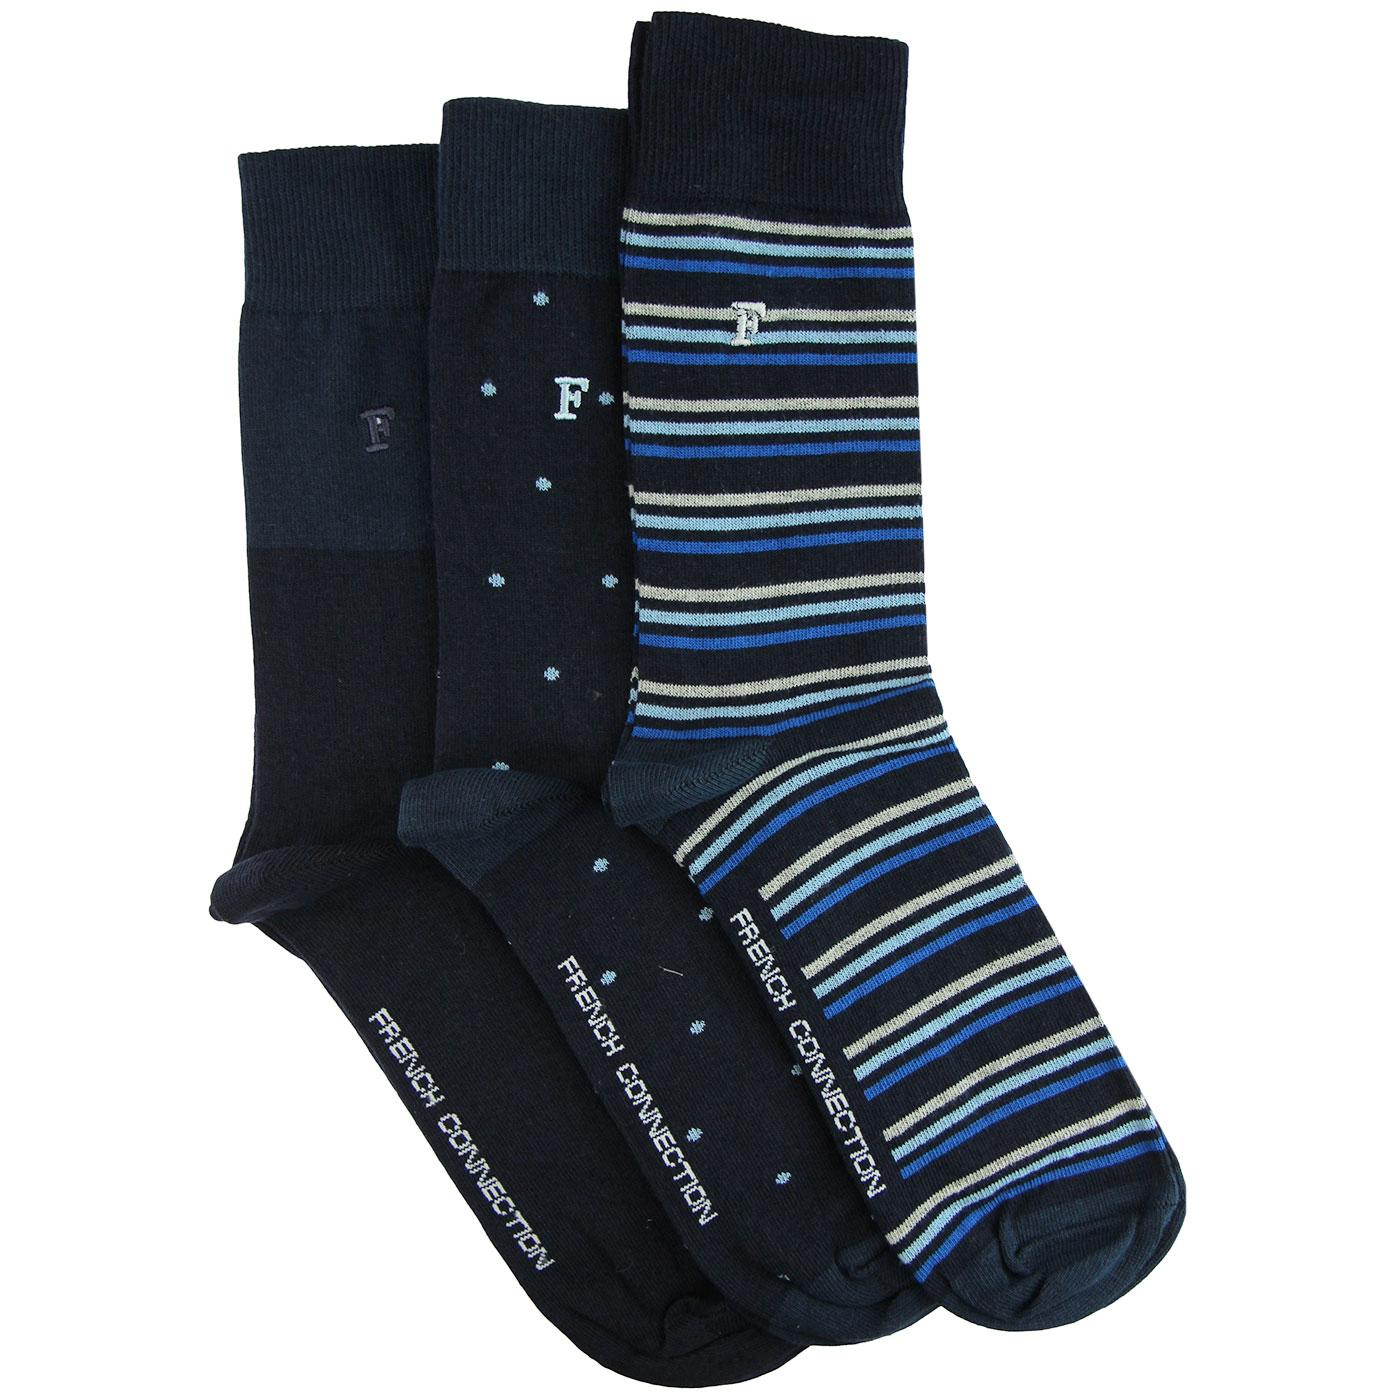 FRENCH CONNECTION Retro 3 Pack Waterfall Socks (N)